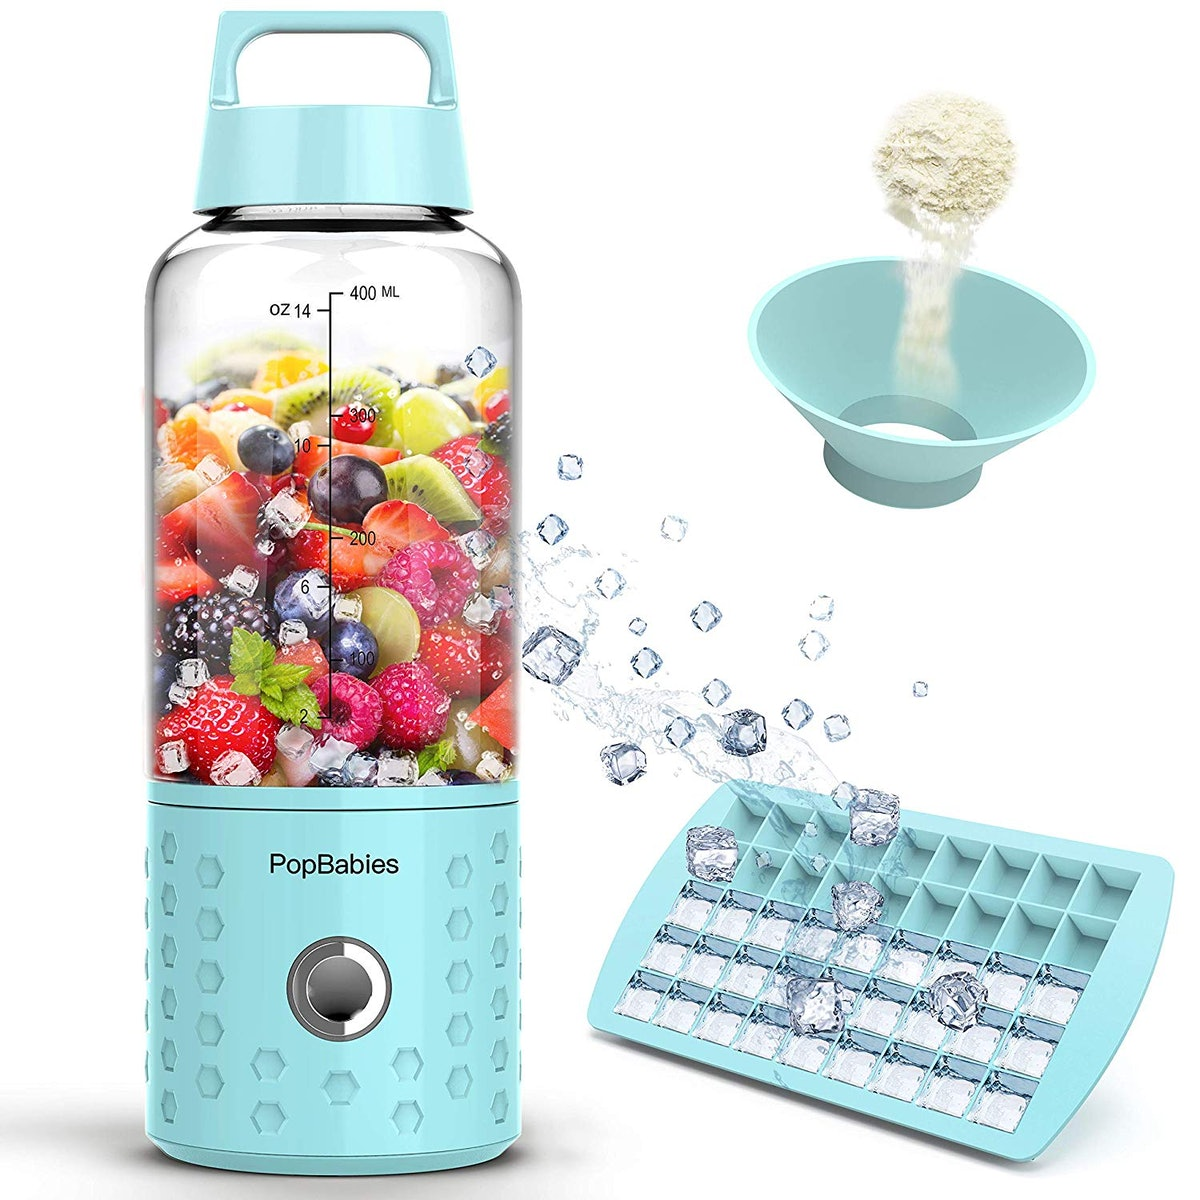 PopBabies Personal Rechargeable Blender